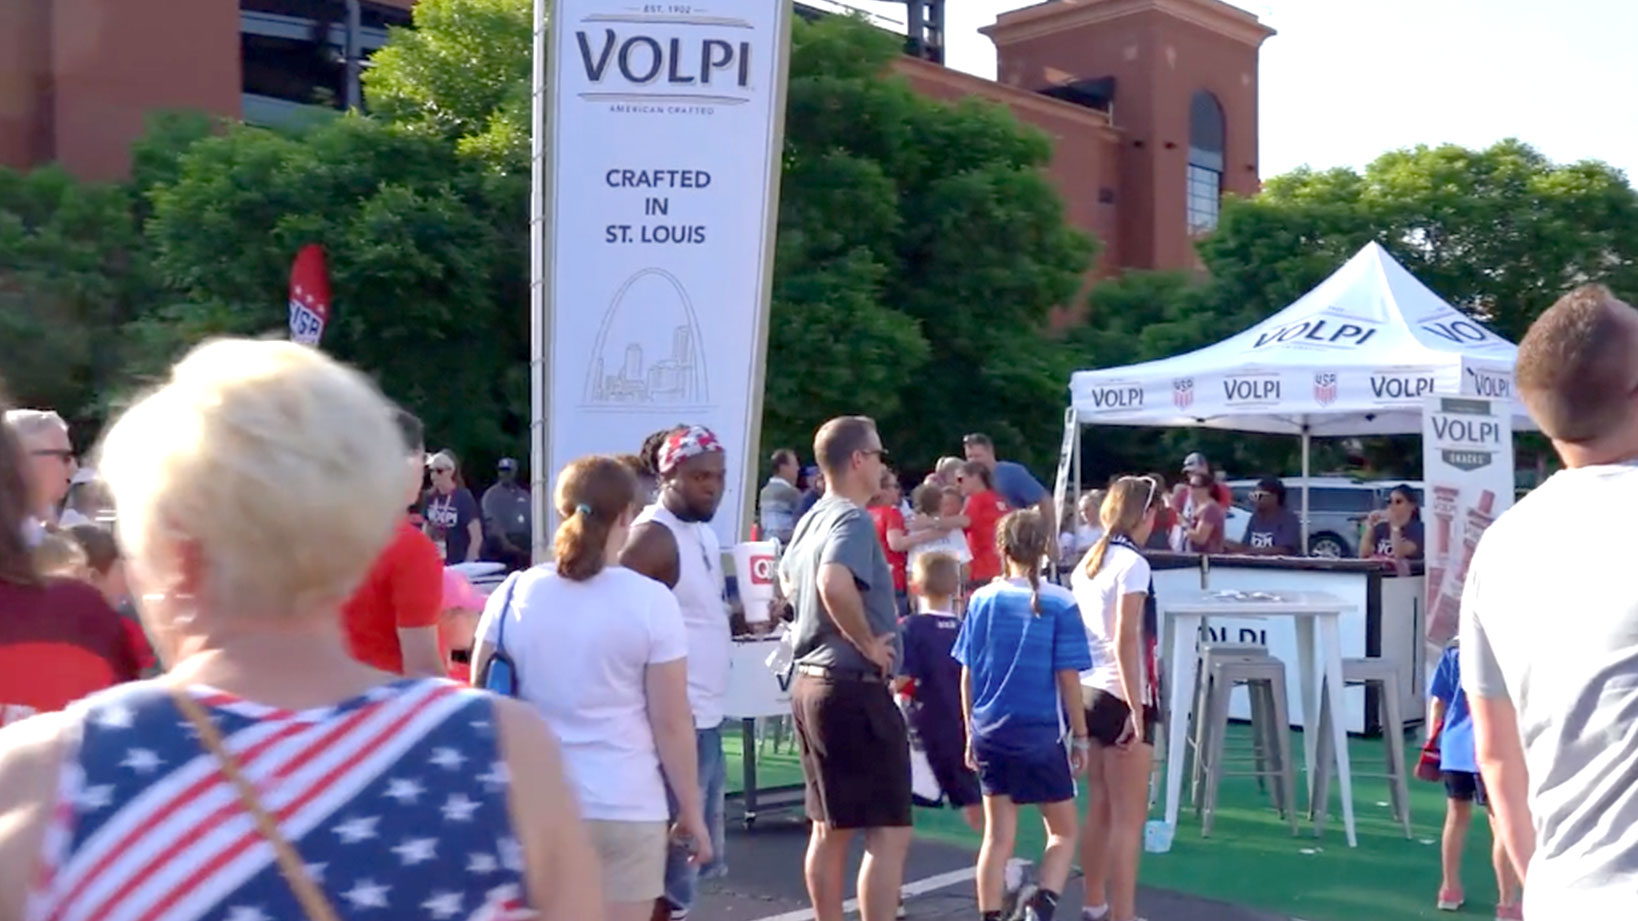 Volpi -Environmental Design and Event Activation